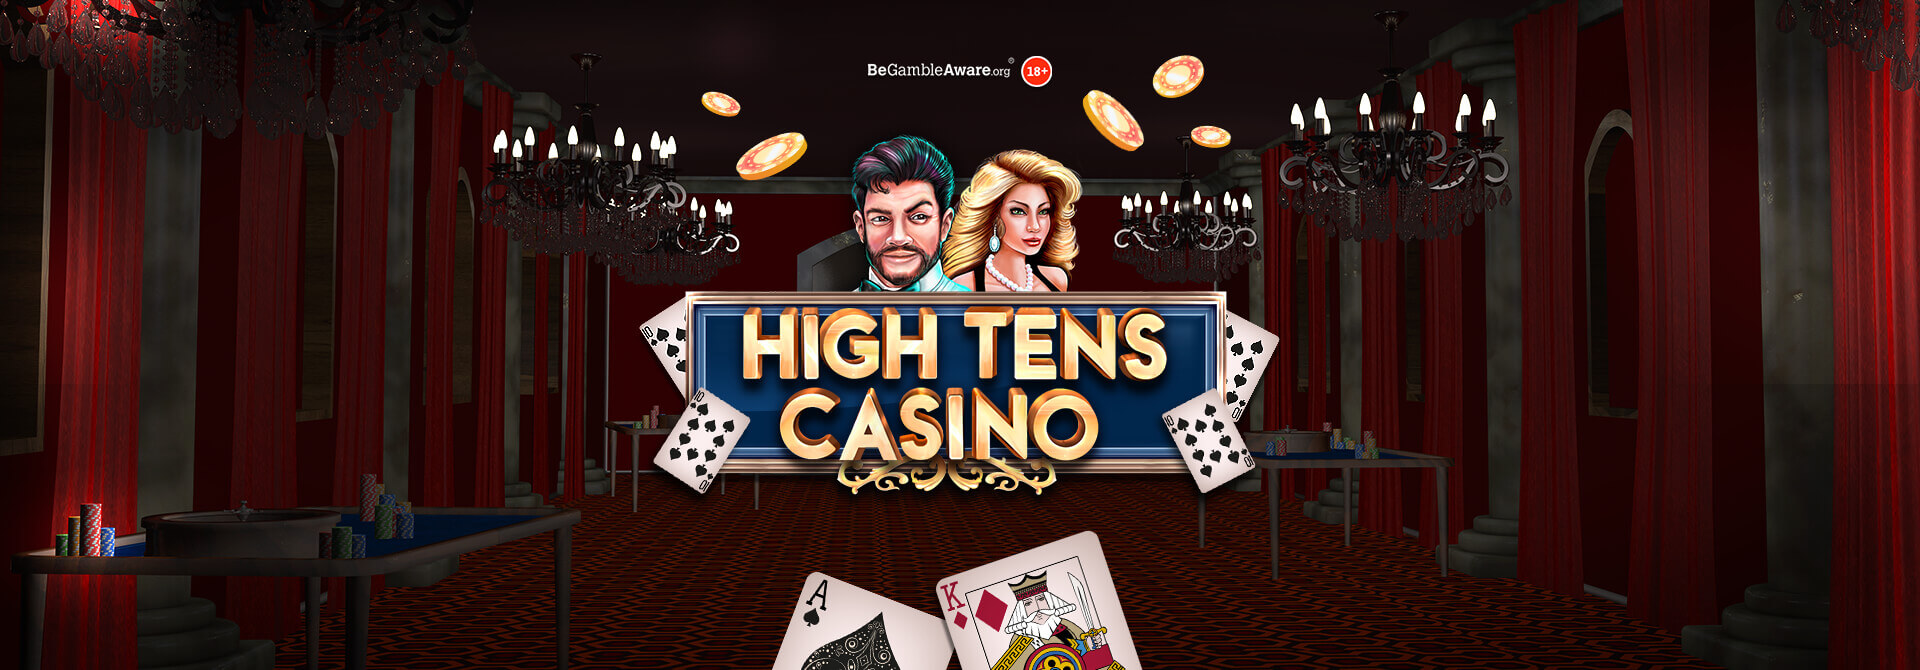 Place your bets at High Tens Casino online slots